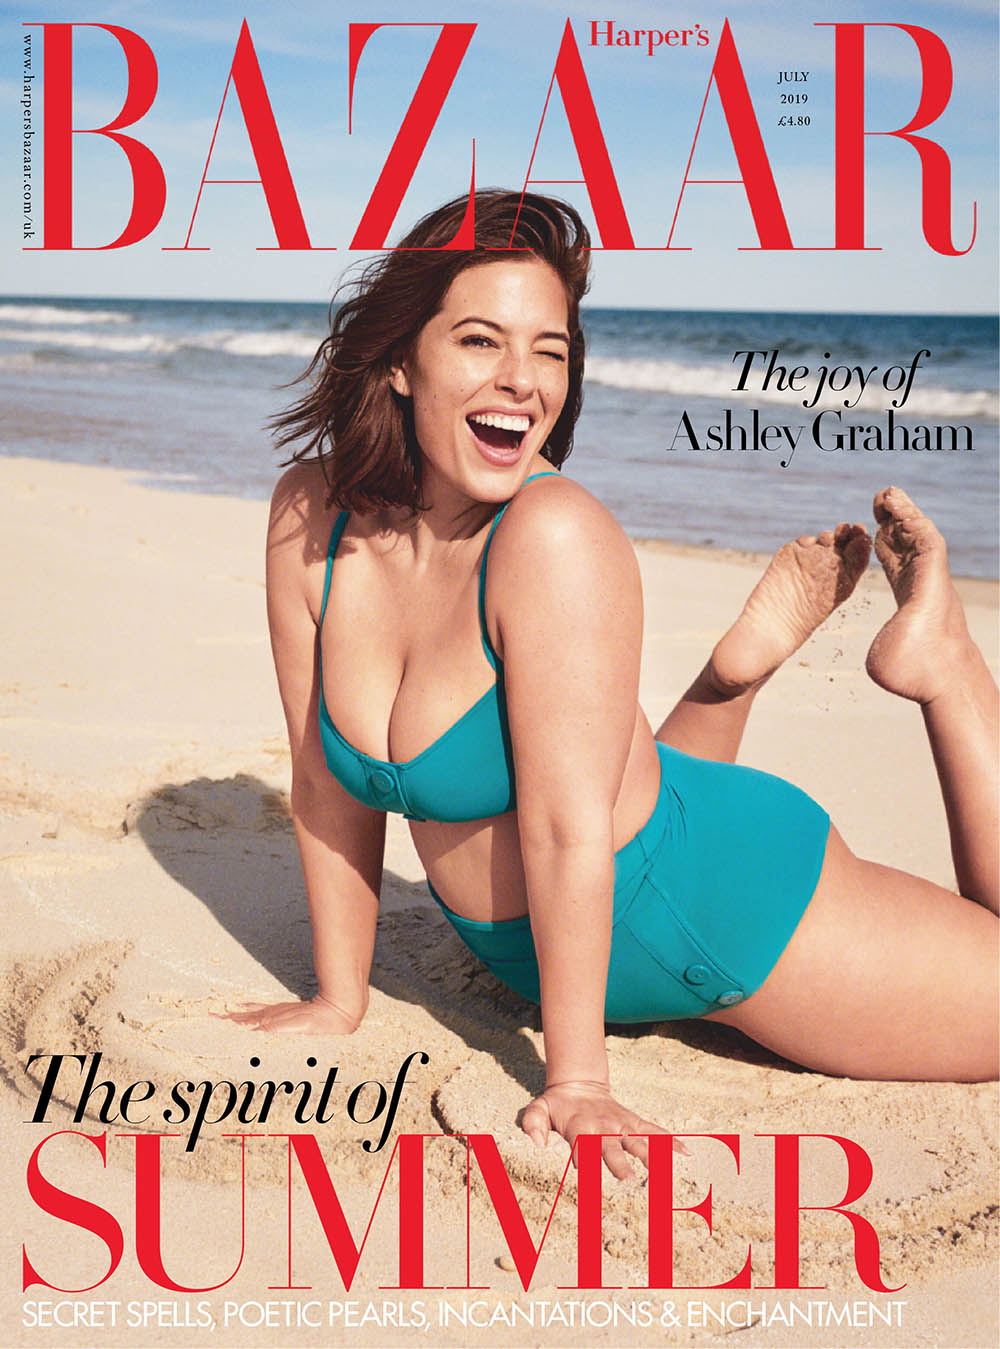 Ashley Graham covers Harper's Bazaar UK July 2019 by Pamela Hanson